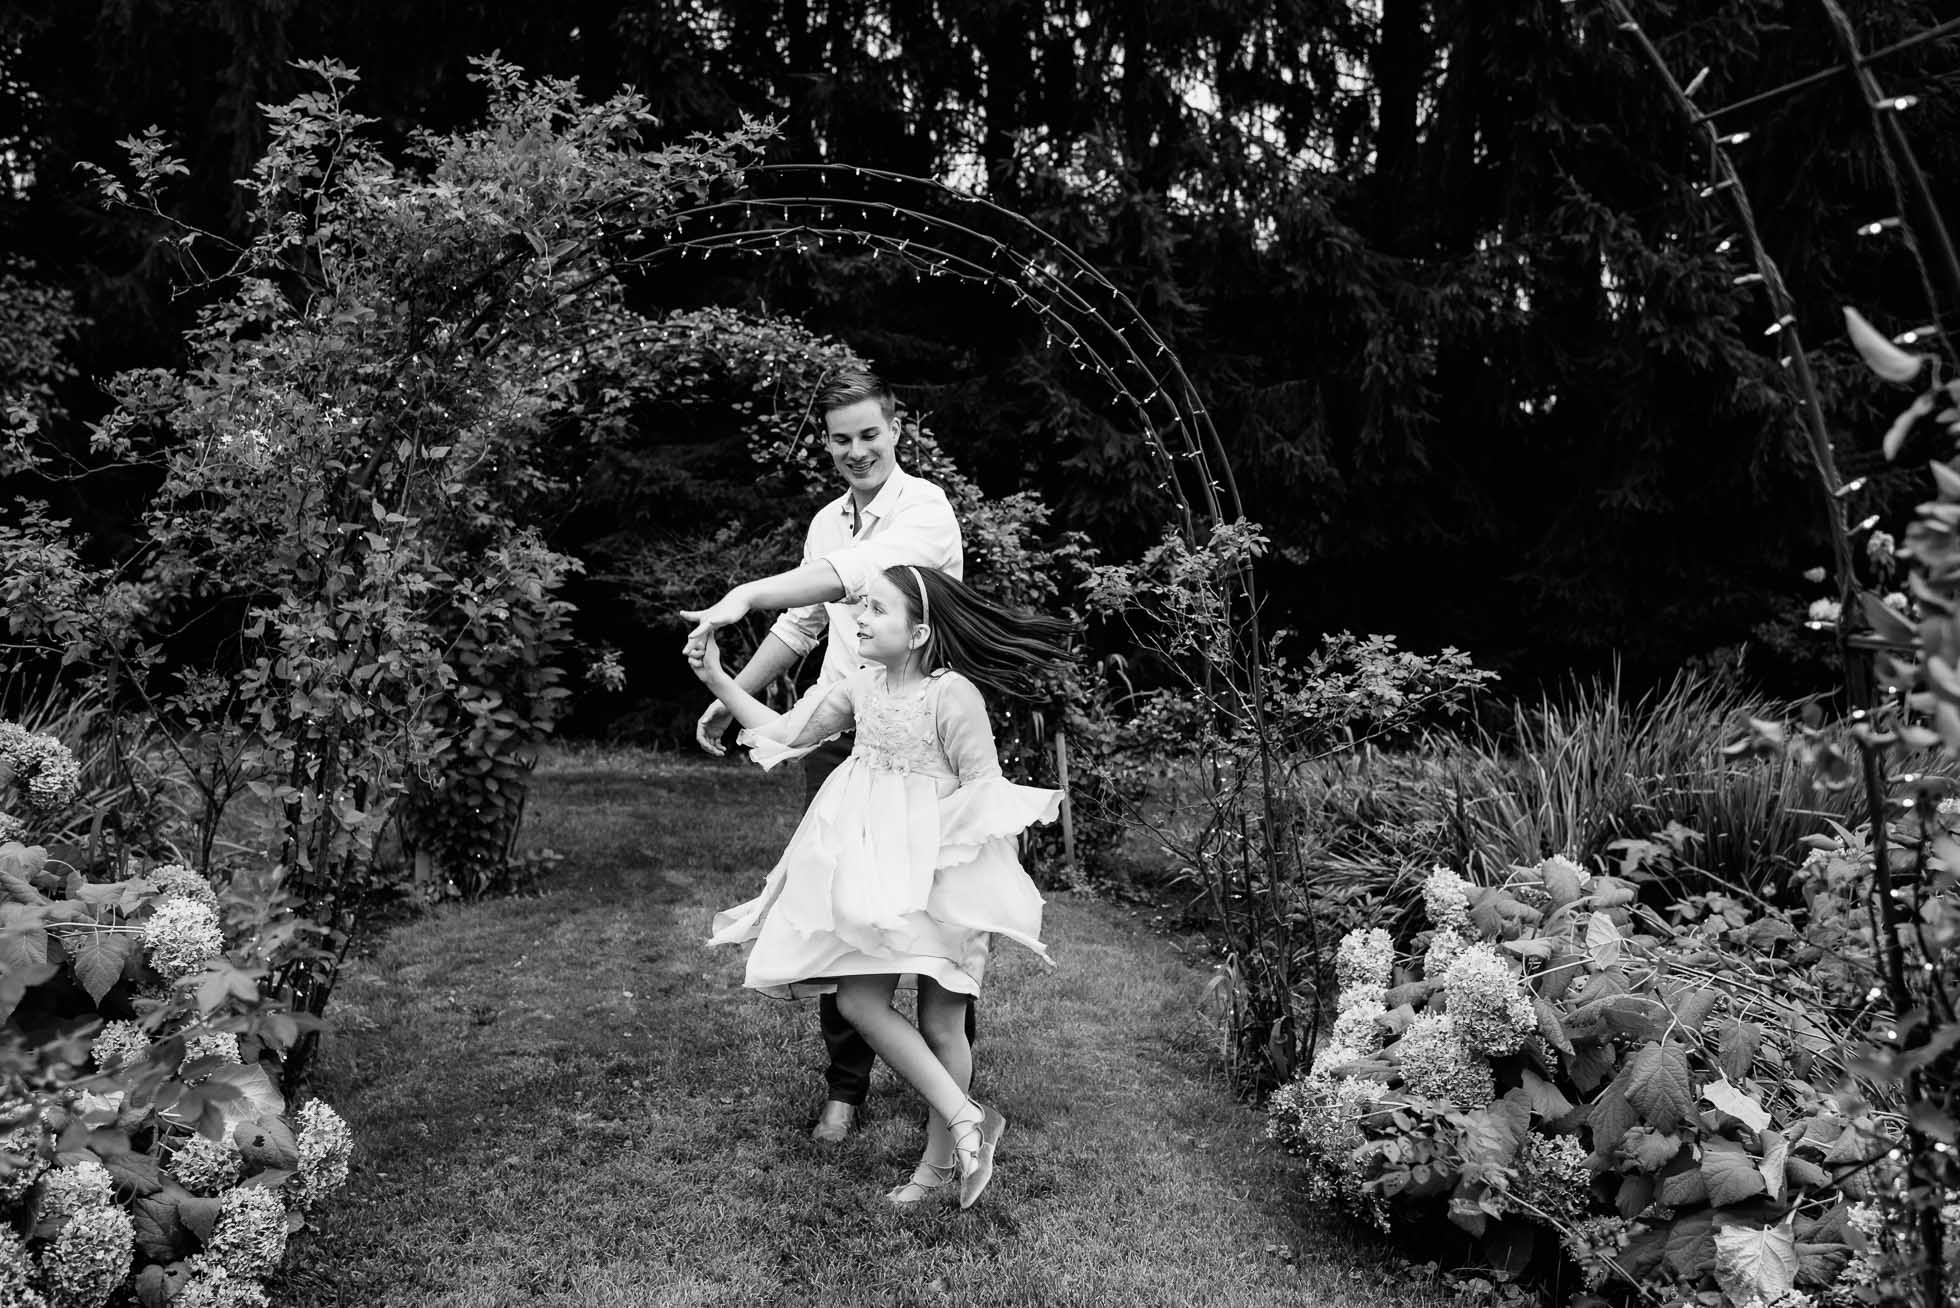 An older brother dances with his younger sister in a garden under arbors and arches, showing his soft side for his youngest sibling..